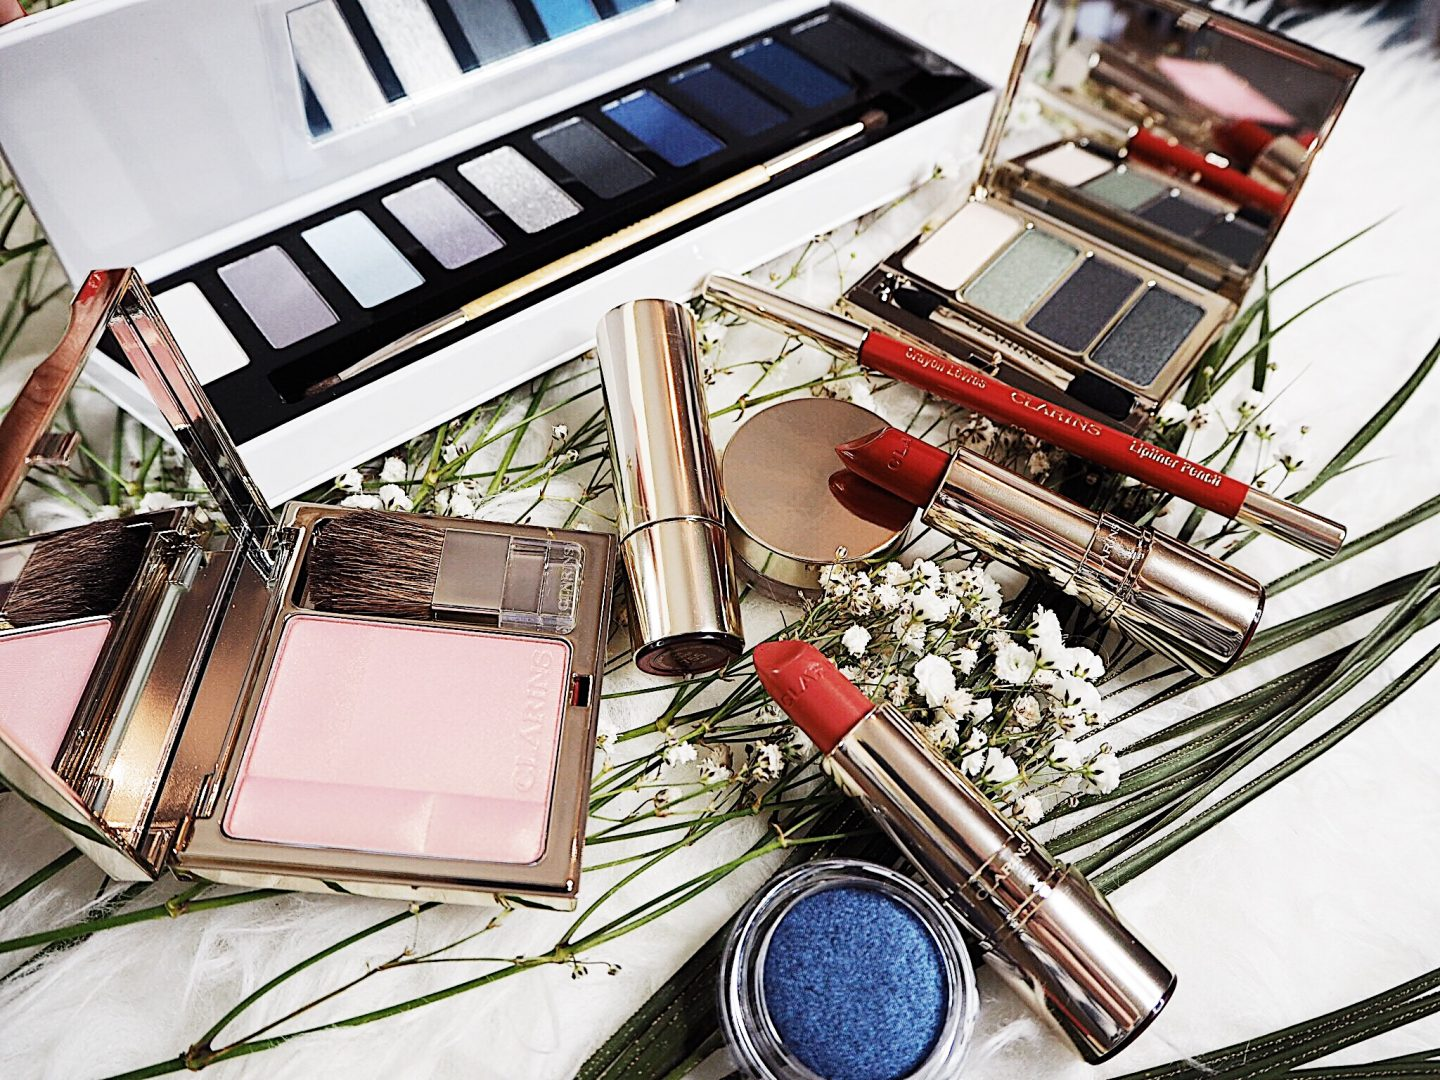 Graphik – The Autumn 2017 Collection By Clarins